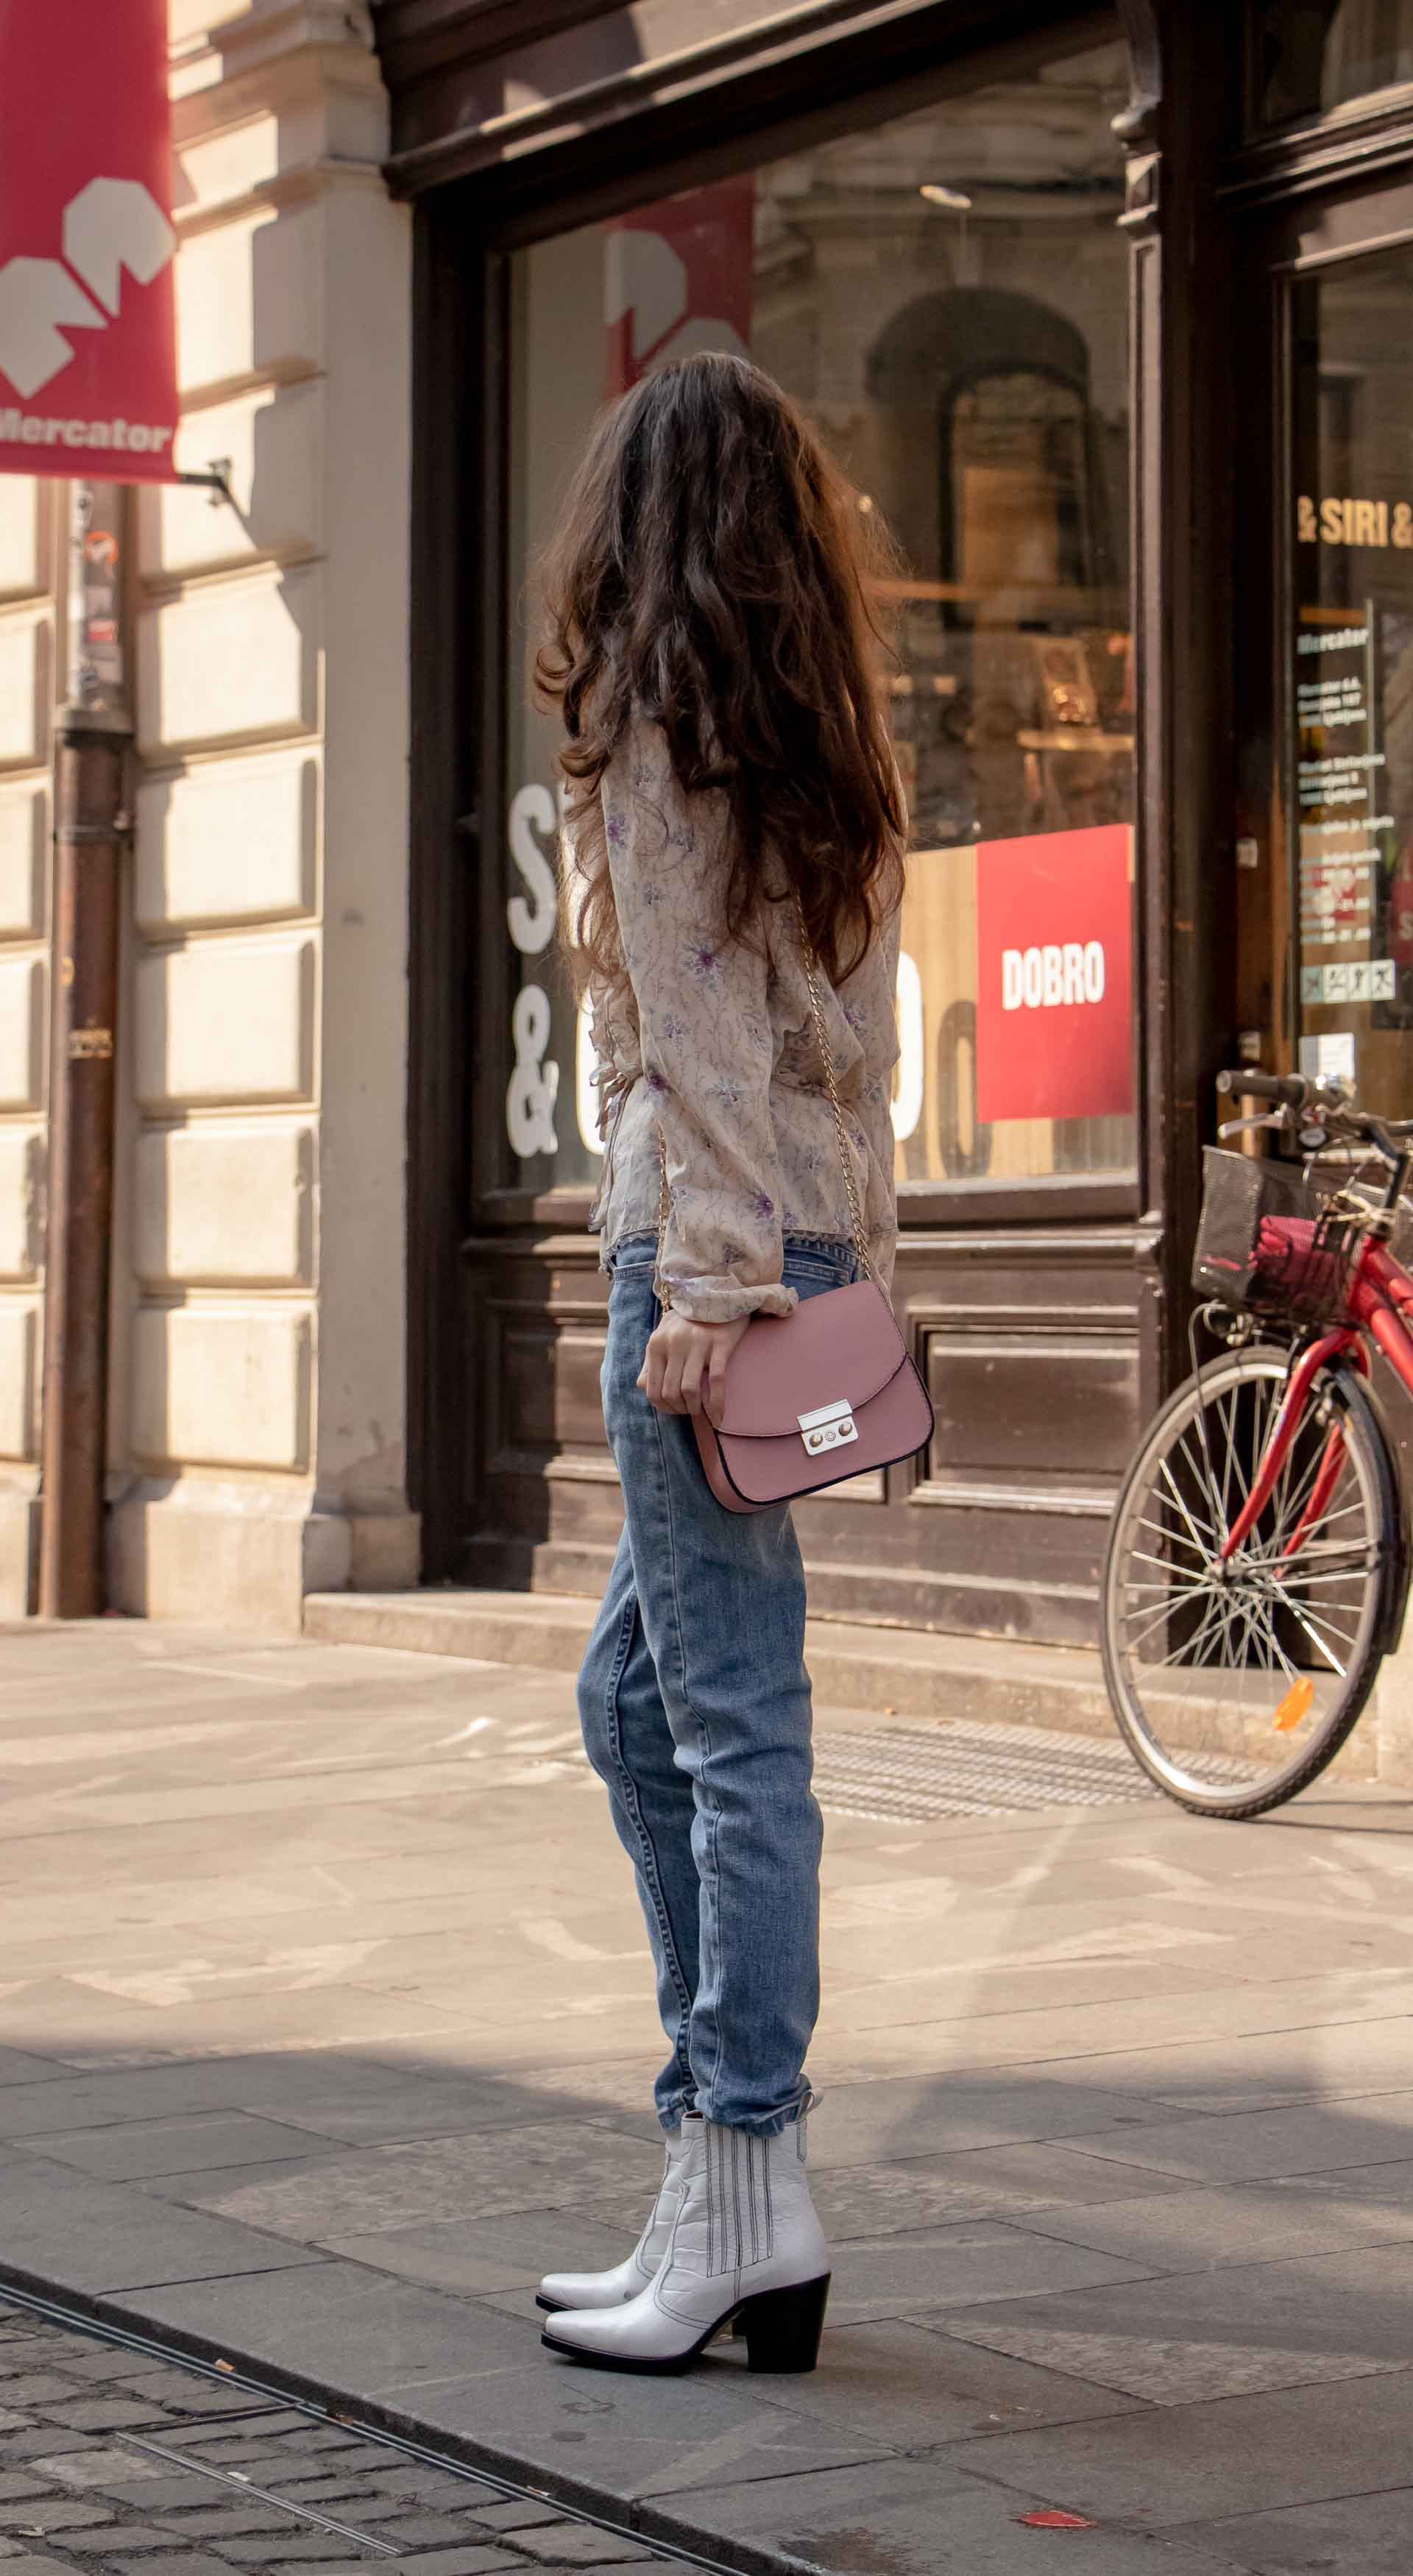 Beautiful Slovenian Fashion Blogger Veronika Lipar of Brunette from Wall wearing white Ganni Western boots, floral long sleeved Prairie blouse, A.P.C. blue jeans on the street in autumn in Ljubljana